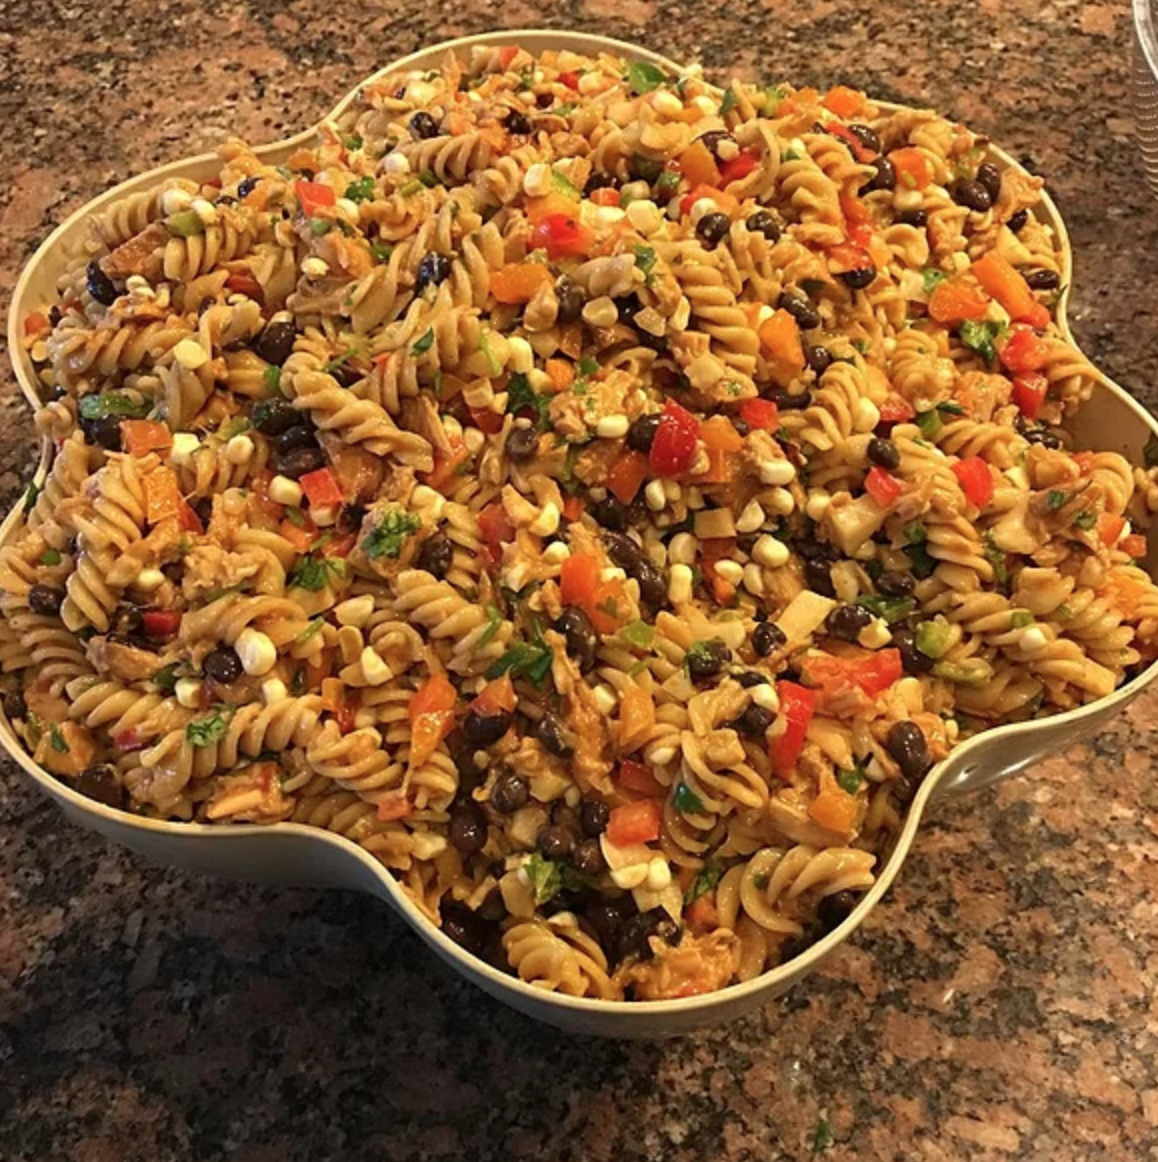 If you like barbecue chicken, you'll love this zesty pasta salad. Use a bottle of your favorite store-bought barbecue sauce or make some homemade sauce with this top-rate recipe.